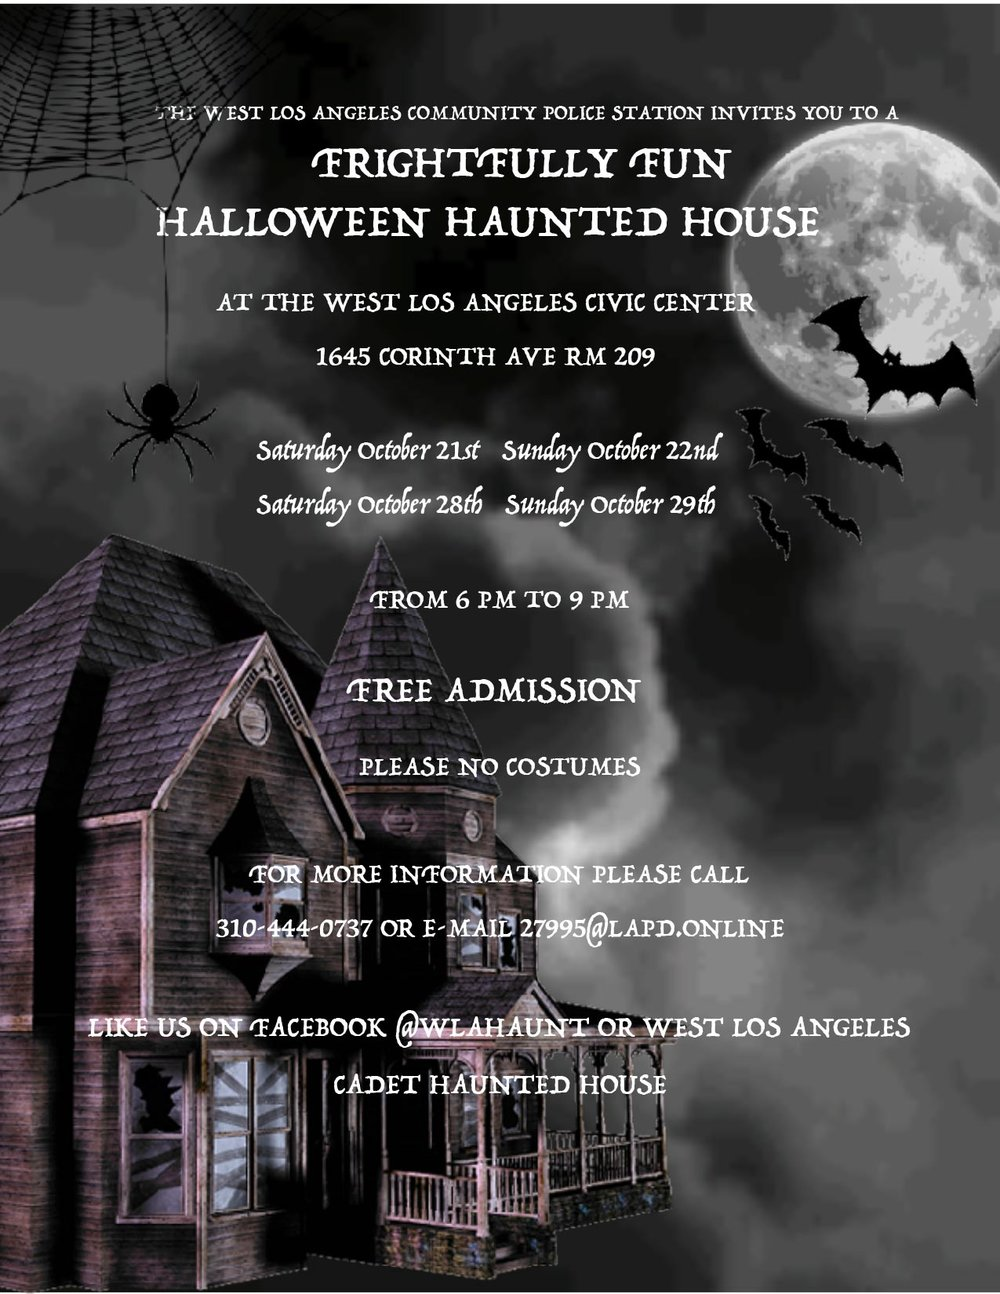 Haunted-house-3.jpg